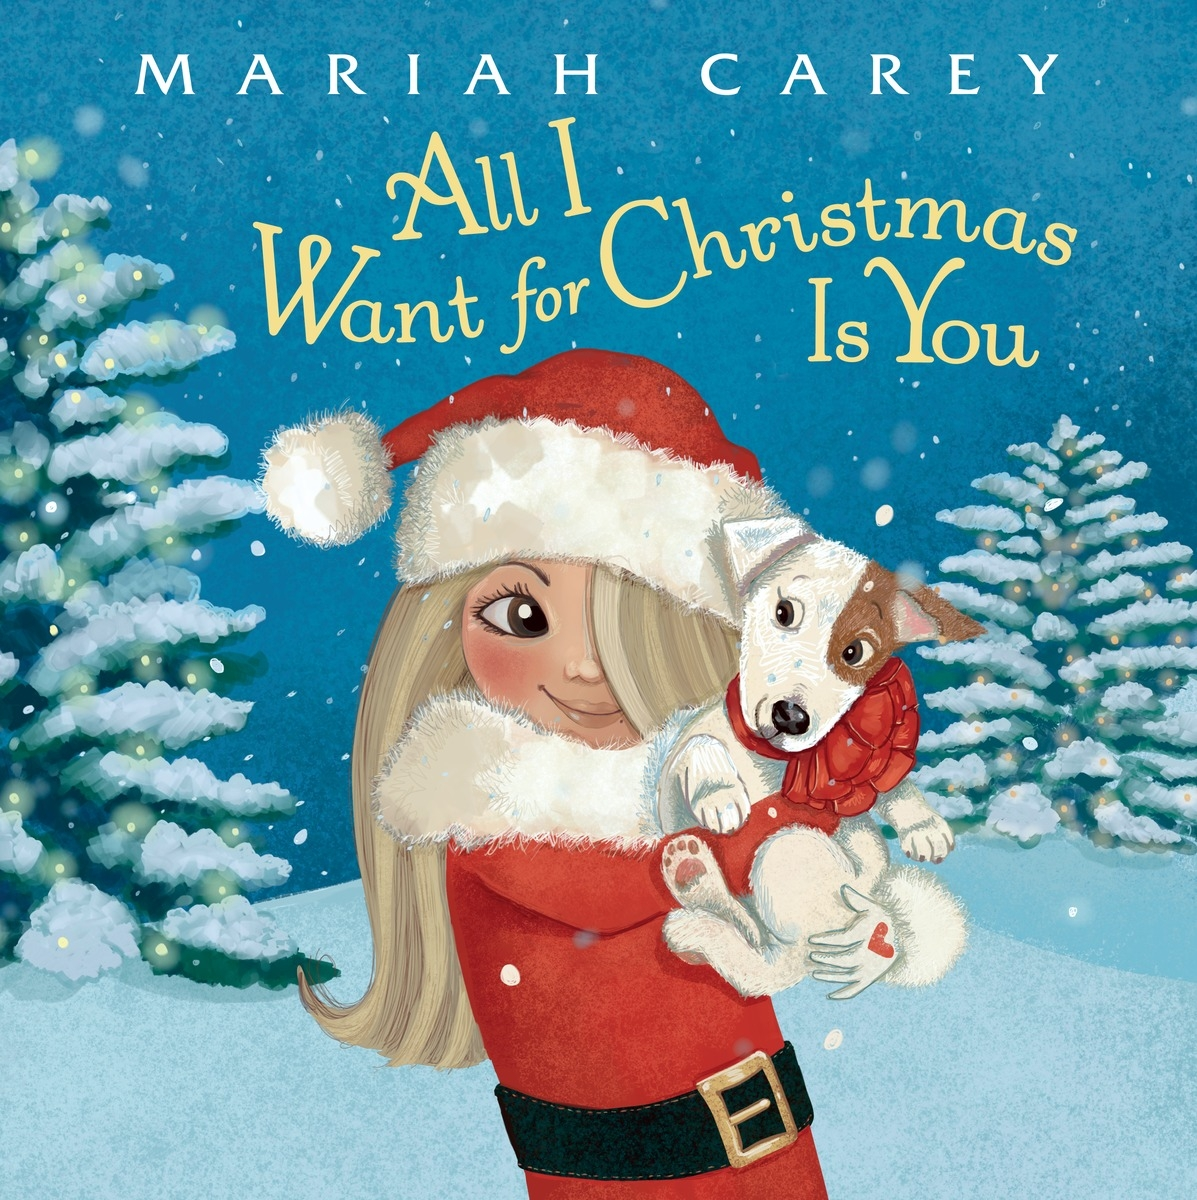 All I Want For Christmas Is You Original.All I Want For Christmas Is You By Mariah Carey Penguin